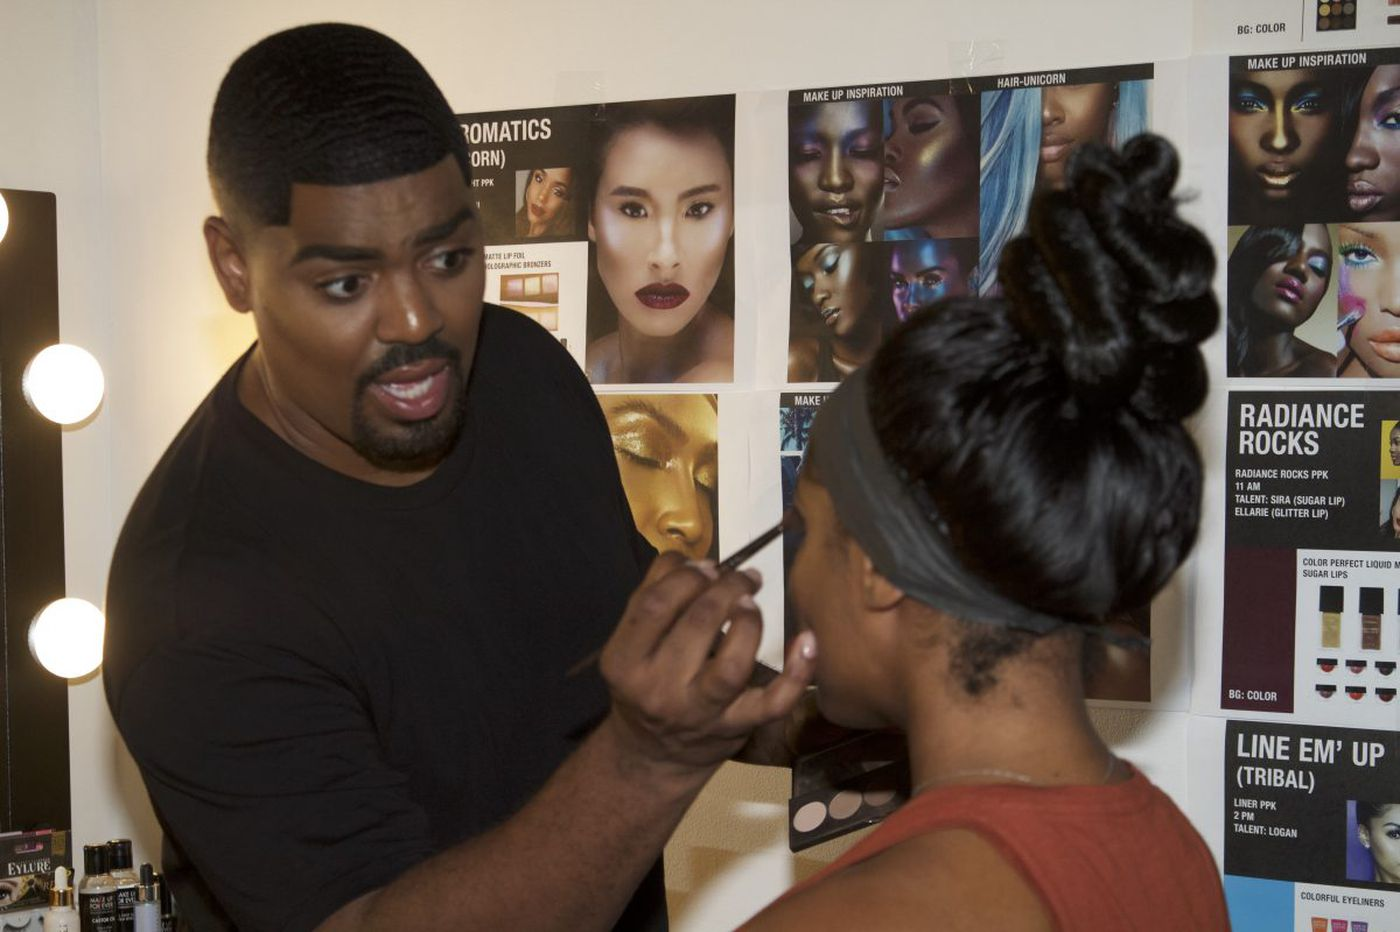 Meet The Celebrity Makeup Artist Who Is Helping Black Radiance Stay